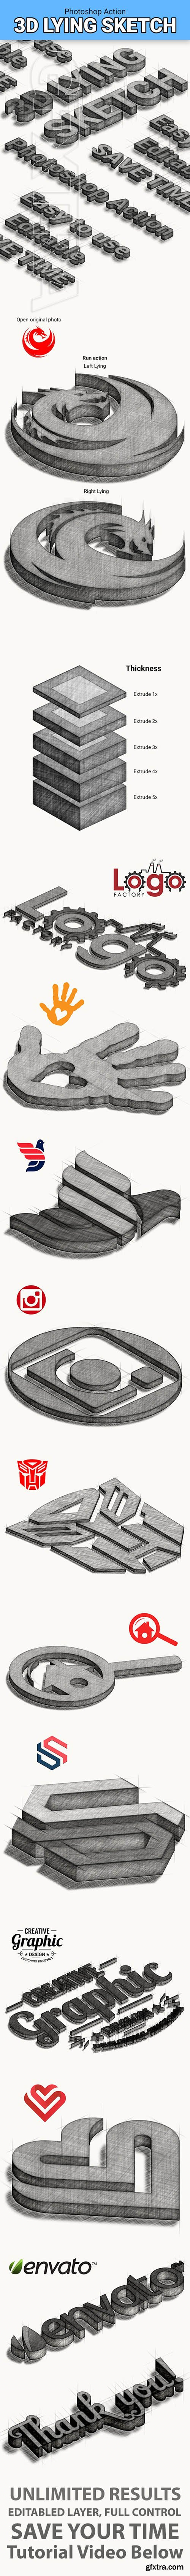 GraphicRiver - 3D Lying Sketch 25287808